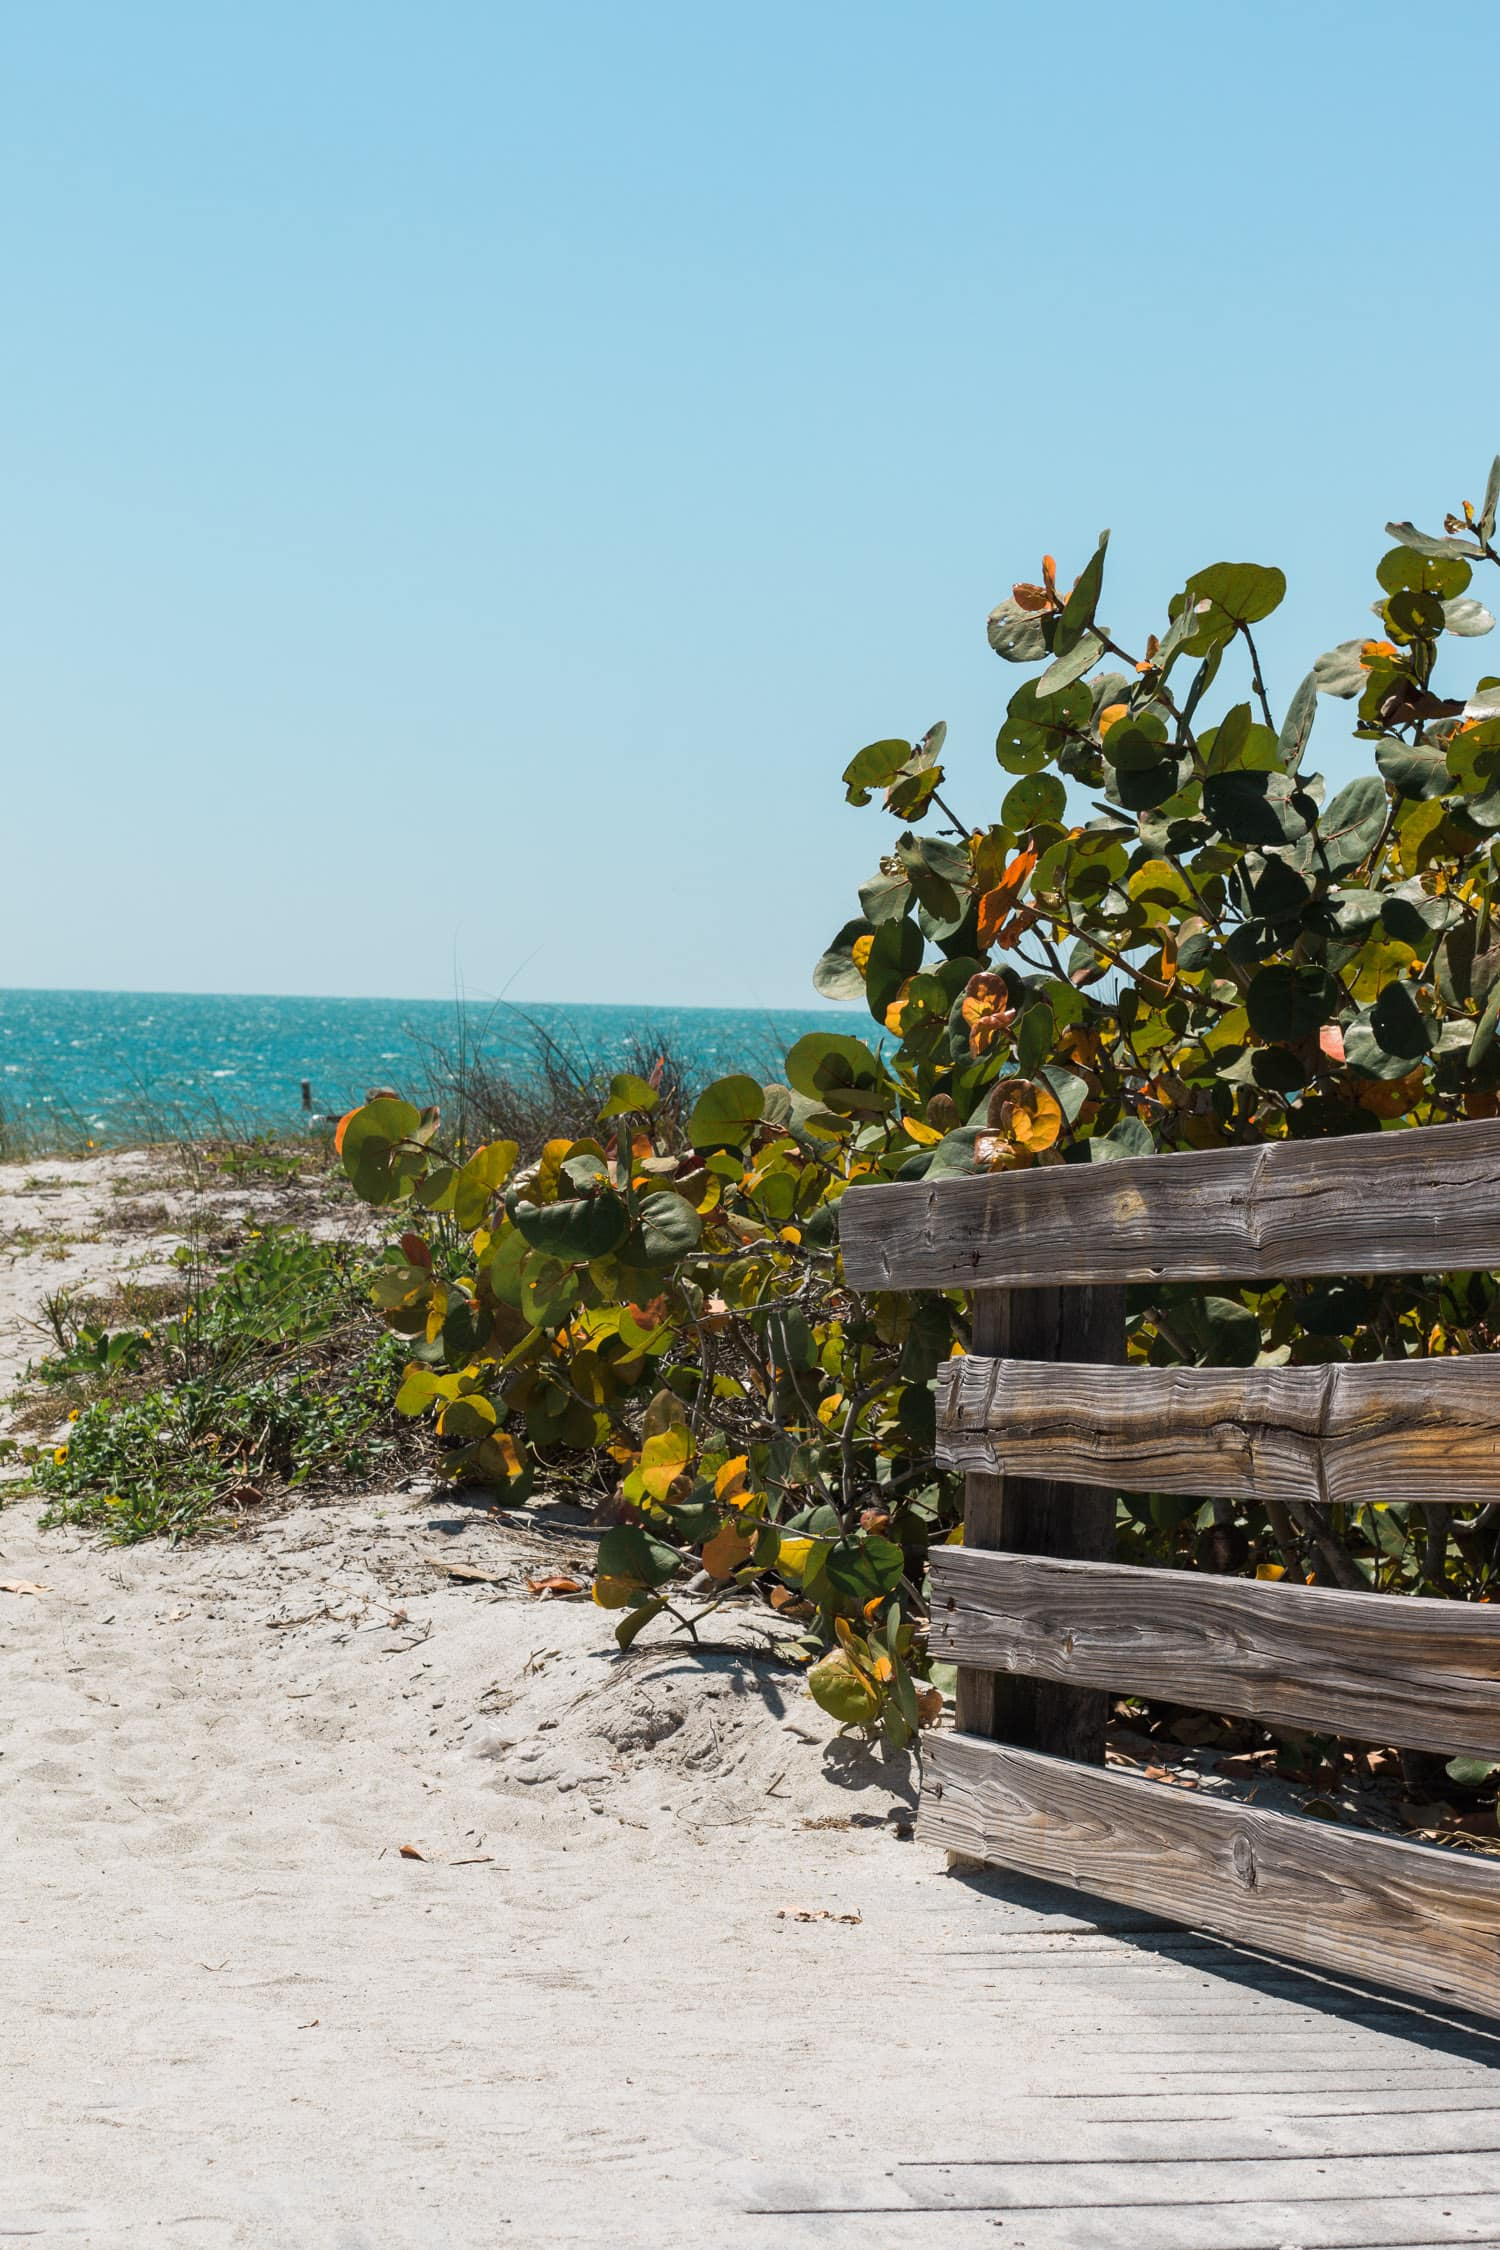 Beach day at Lido Beach | How to plan an adventurous weekend getaway in Longboat Key, Florida including a day of boating! #LoveFL sponsored by @visitflorida | Florida travel tips, beach vacation, vacation ideas, vacation goals, travel blogger Ashley Brooke Nicholas, Florida travel guide, Longboat Key travel guide, Sarasota travel guide, beautiful beaches, boating, affordable travel, US travel, summer vacation, spring break ideas